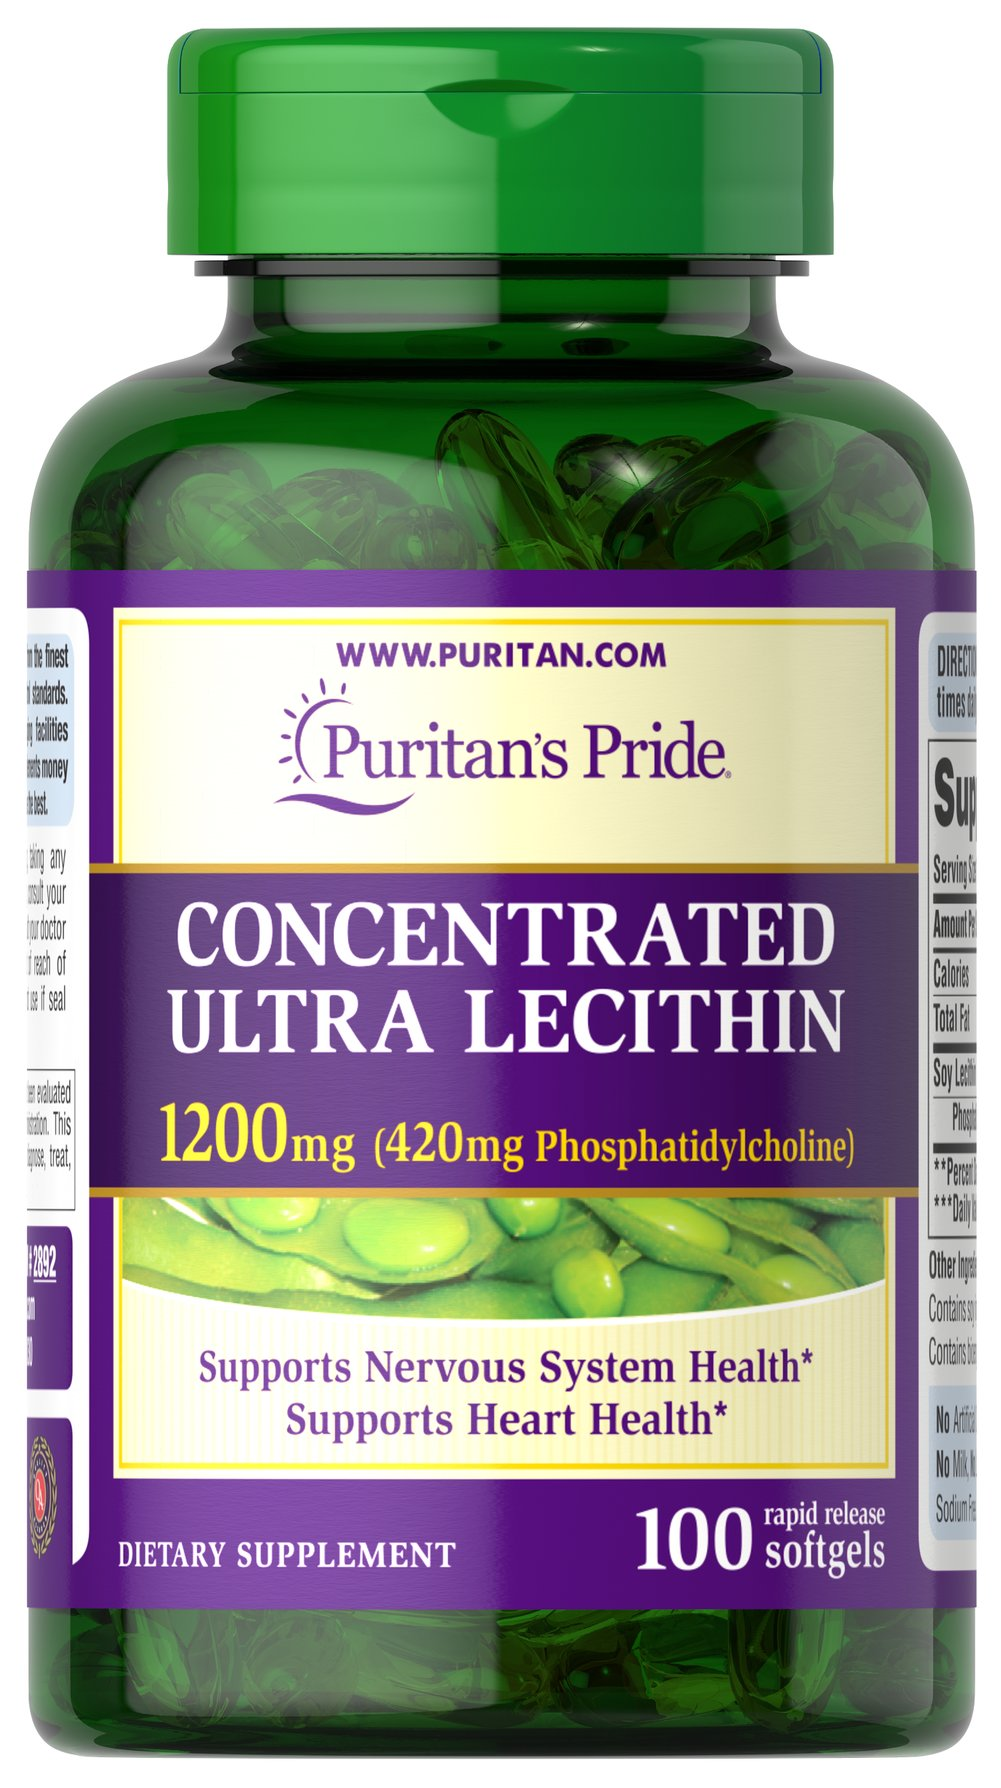 Concentrated Ultra Lecithin 1200 mg <p>Promotes healthy brain function**</p><p>Assists with cardiovascular health**</p><p>Contributes to a healthy nervous system**</p><p>Our highest potency Lecithin product to date++</p><p>One softgel provides you with a whopping 420 mg of naturally sourced Phosphatidylcholine, a vital part of the B Vitamin Complex.**</p> 100 Softgels 1200 mg $13.59